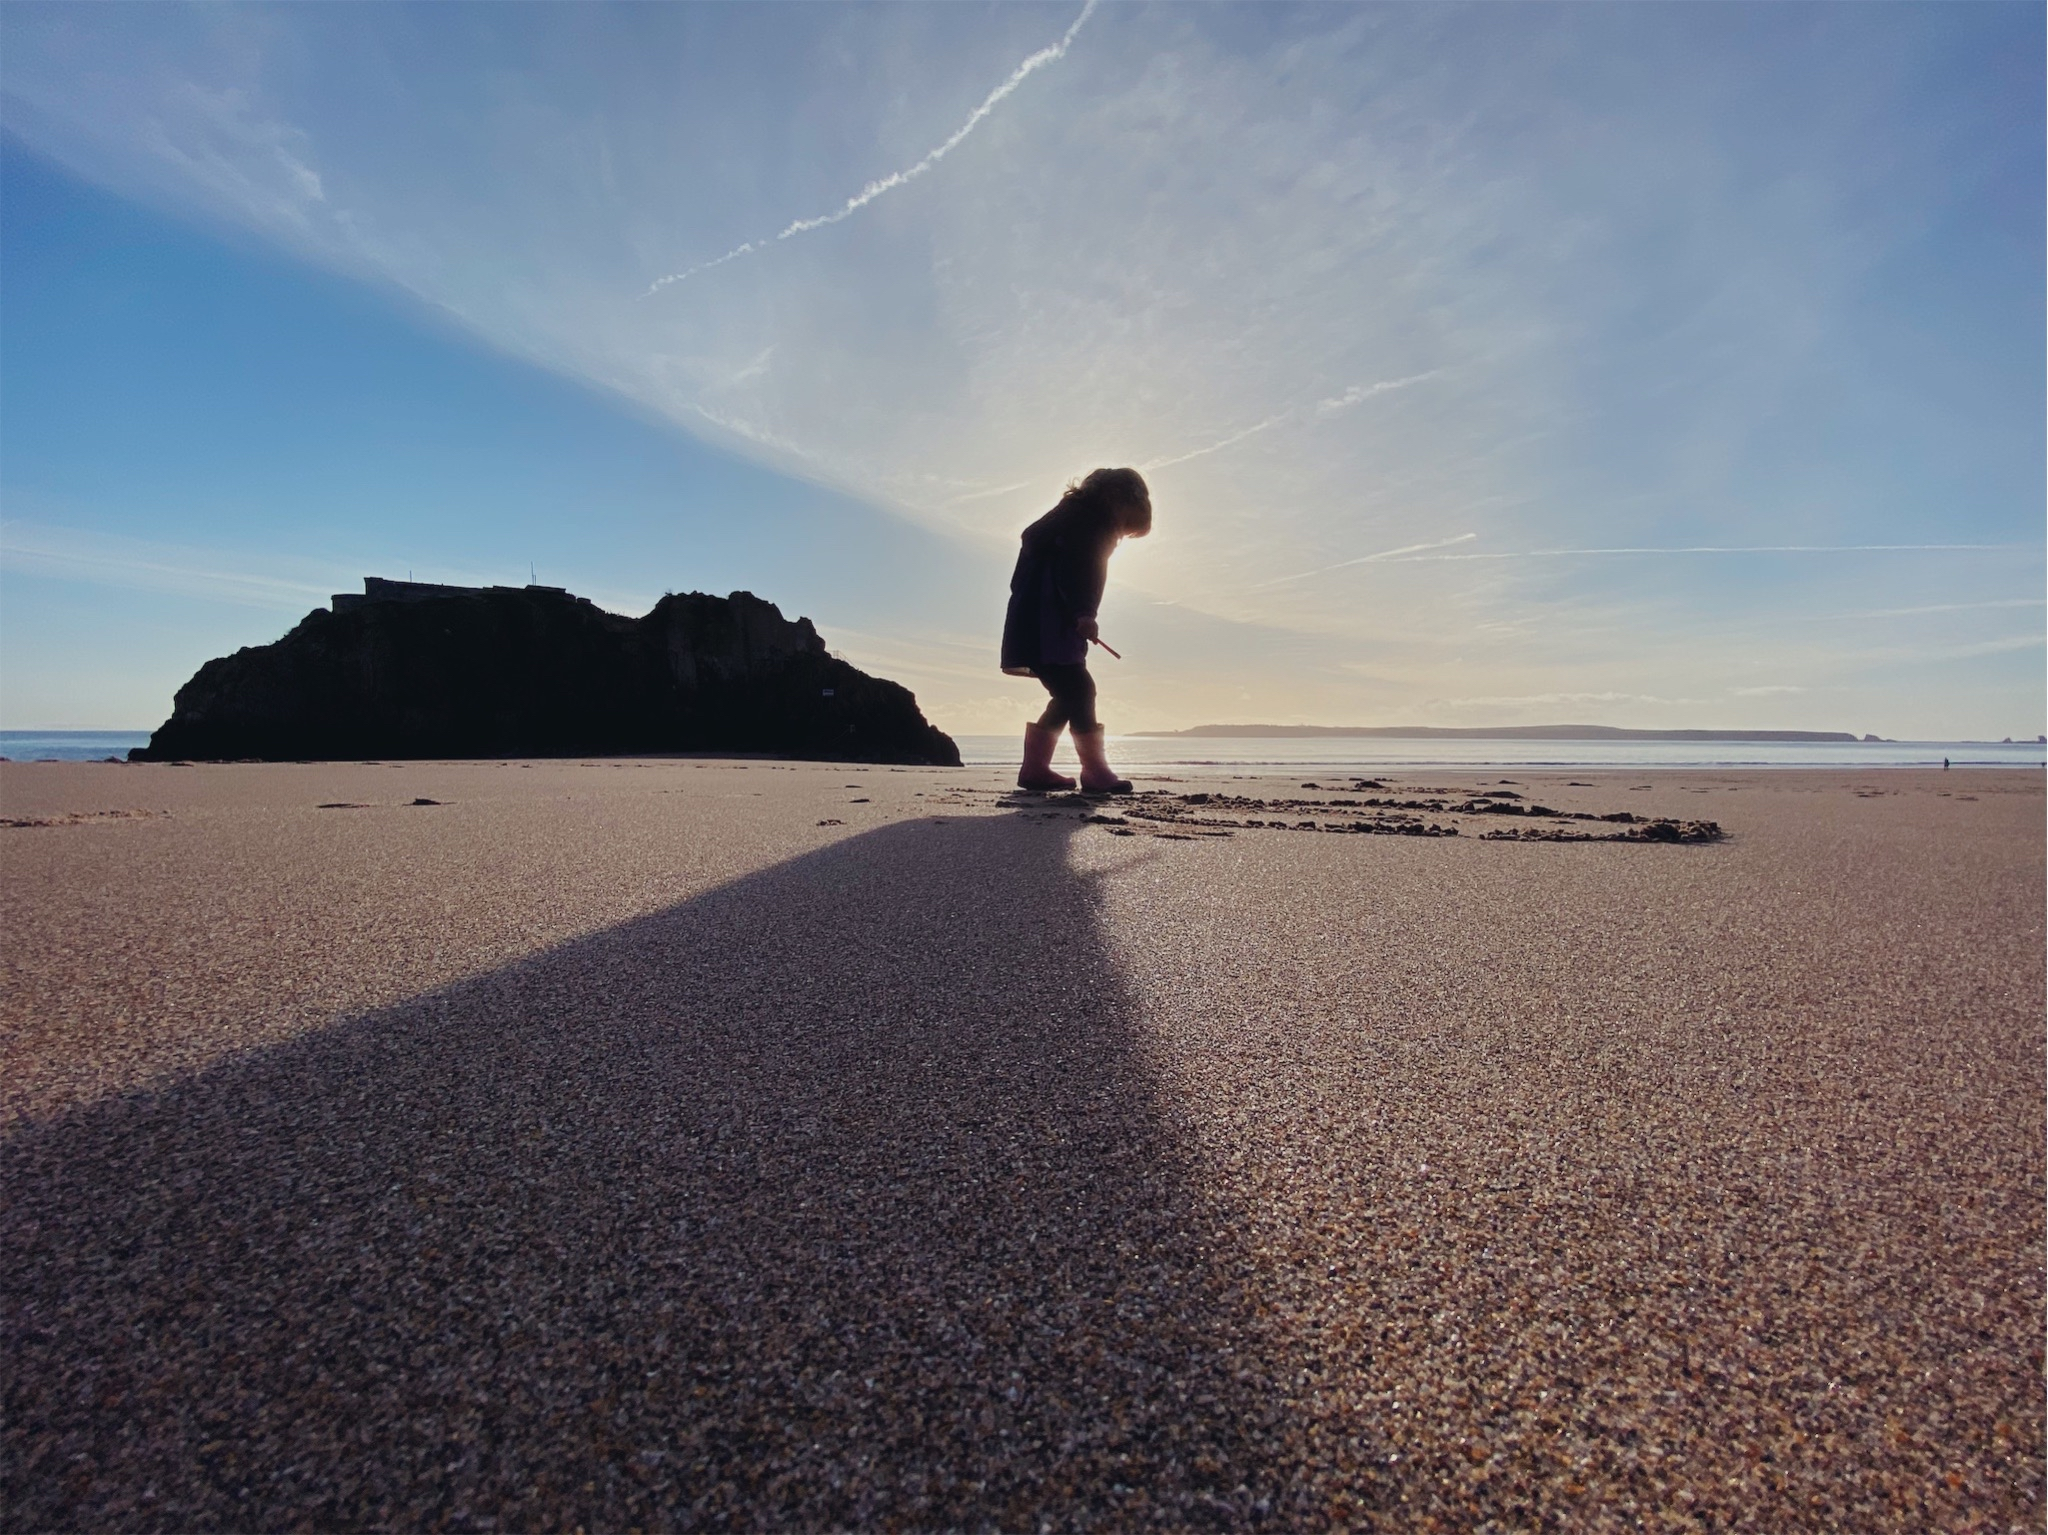 A little girl playing on the beach in silhouette with Caldey island in the background